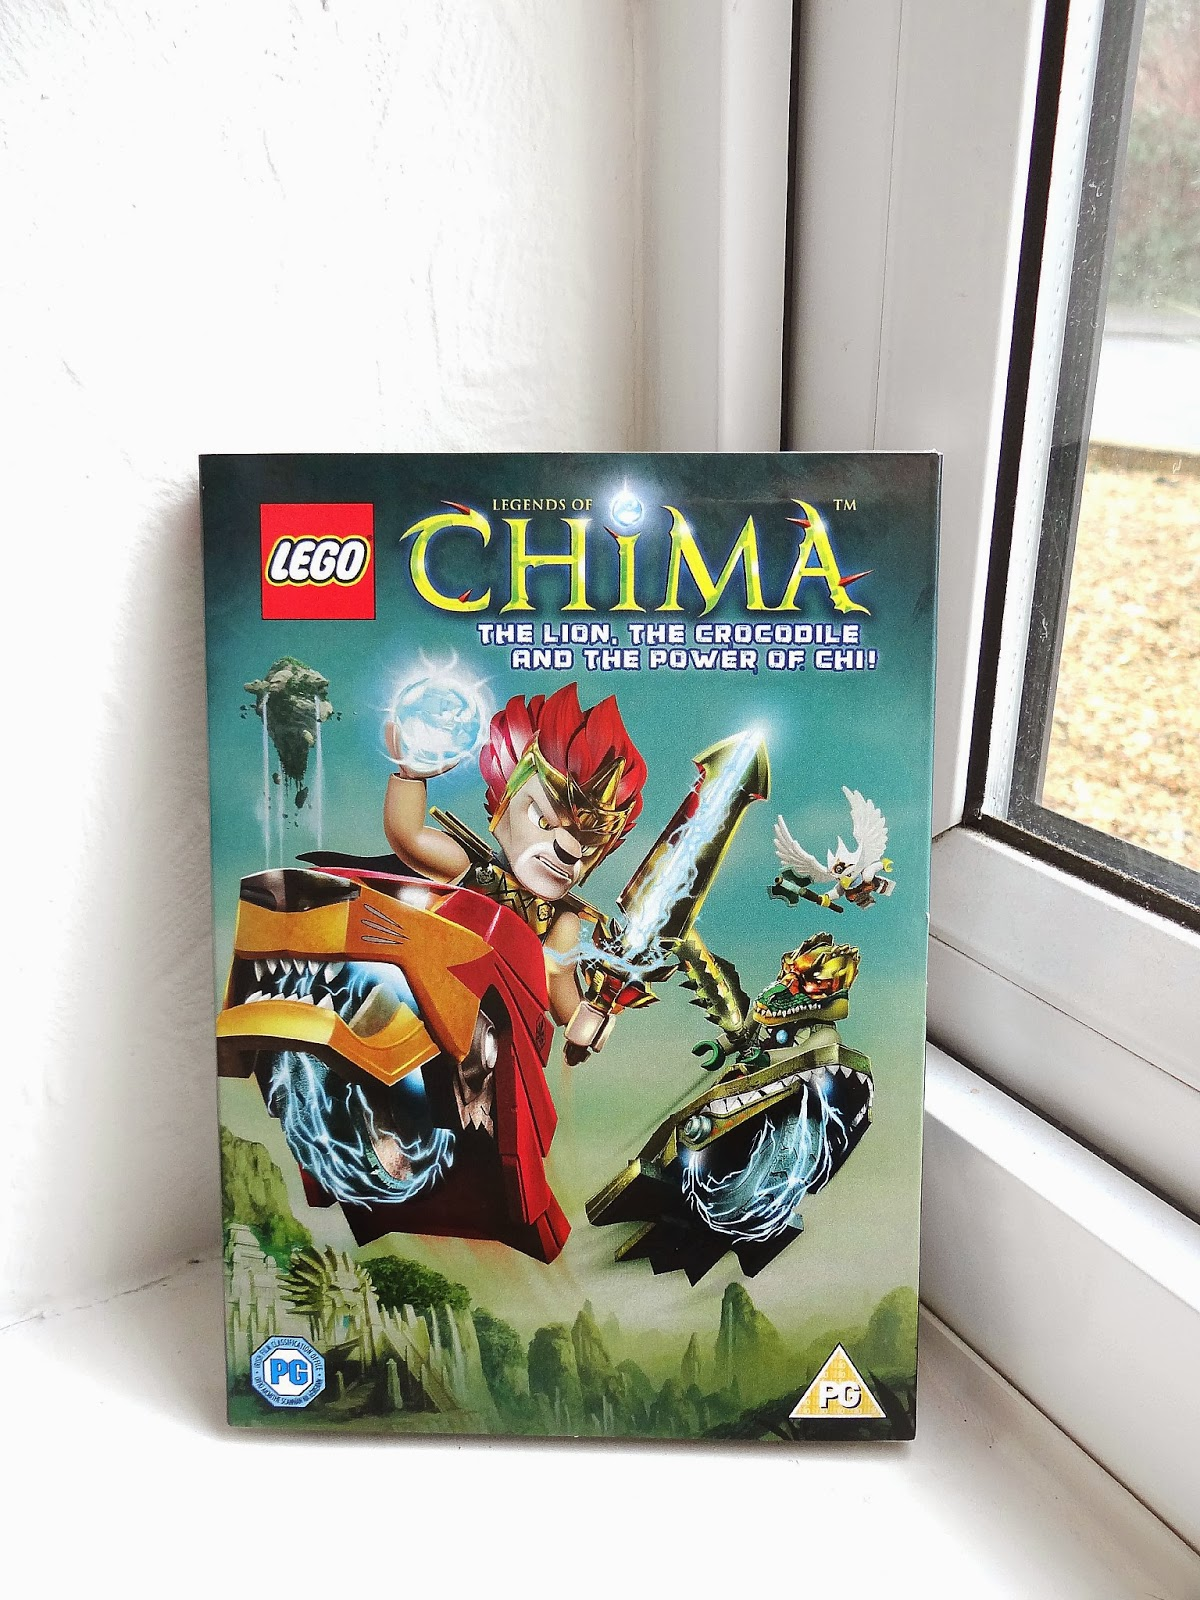 LEGO Chima, Legends of Chima episodes 1 to 10, Chima Online